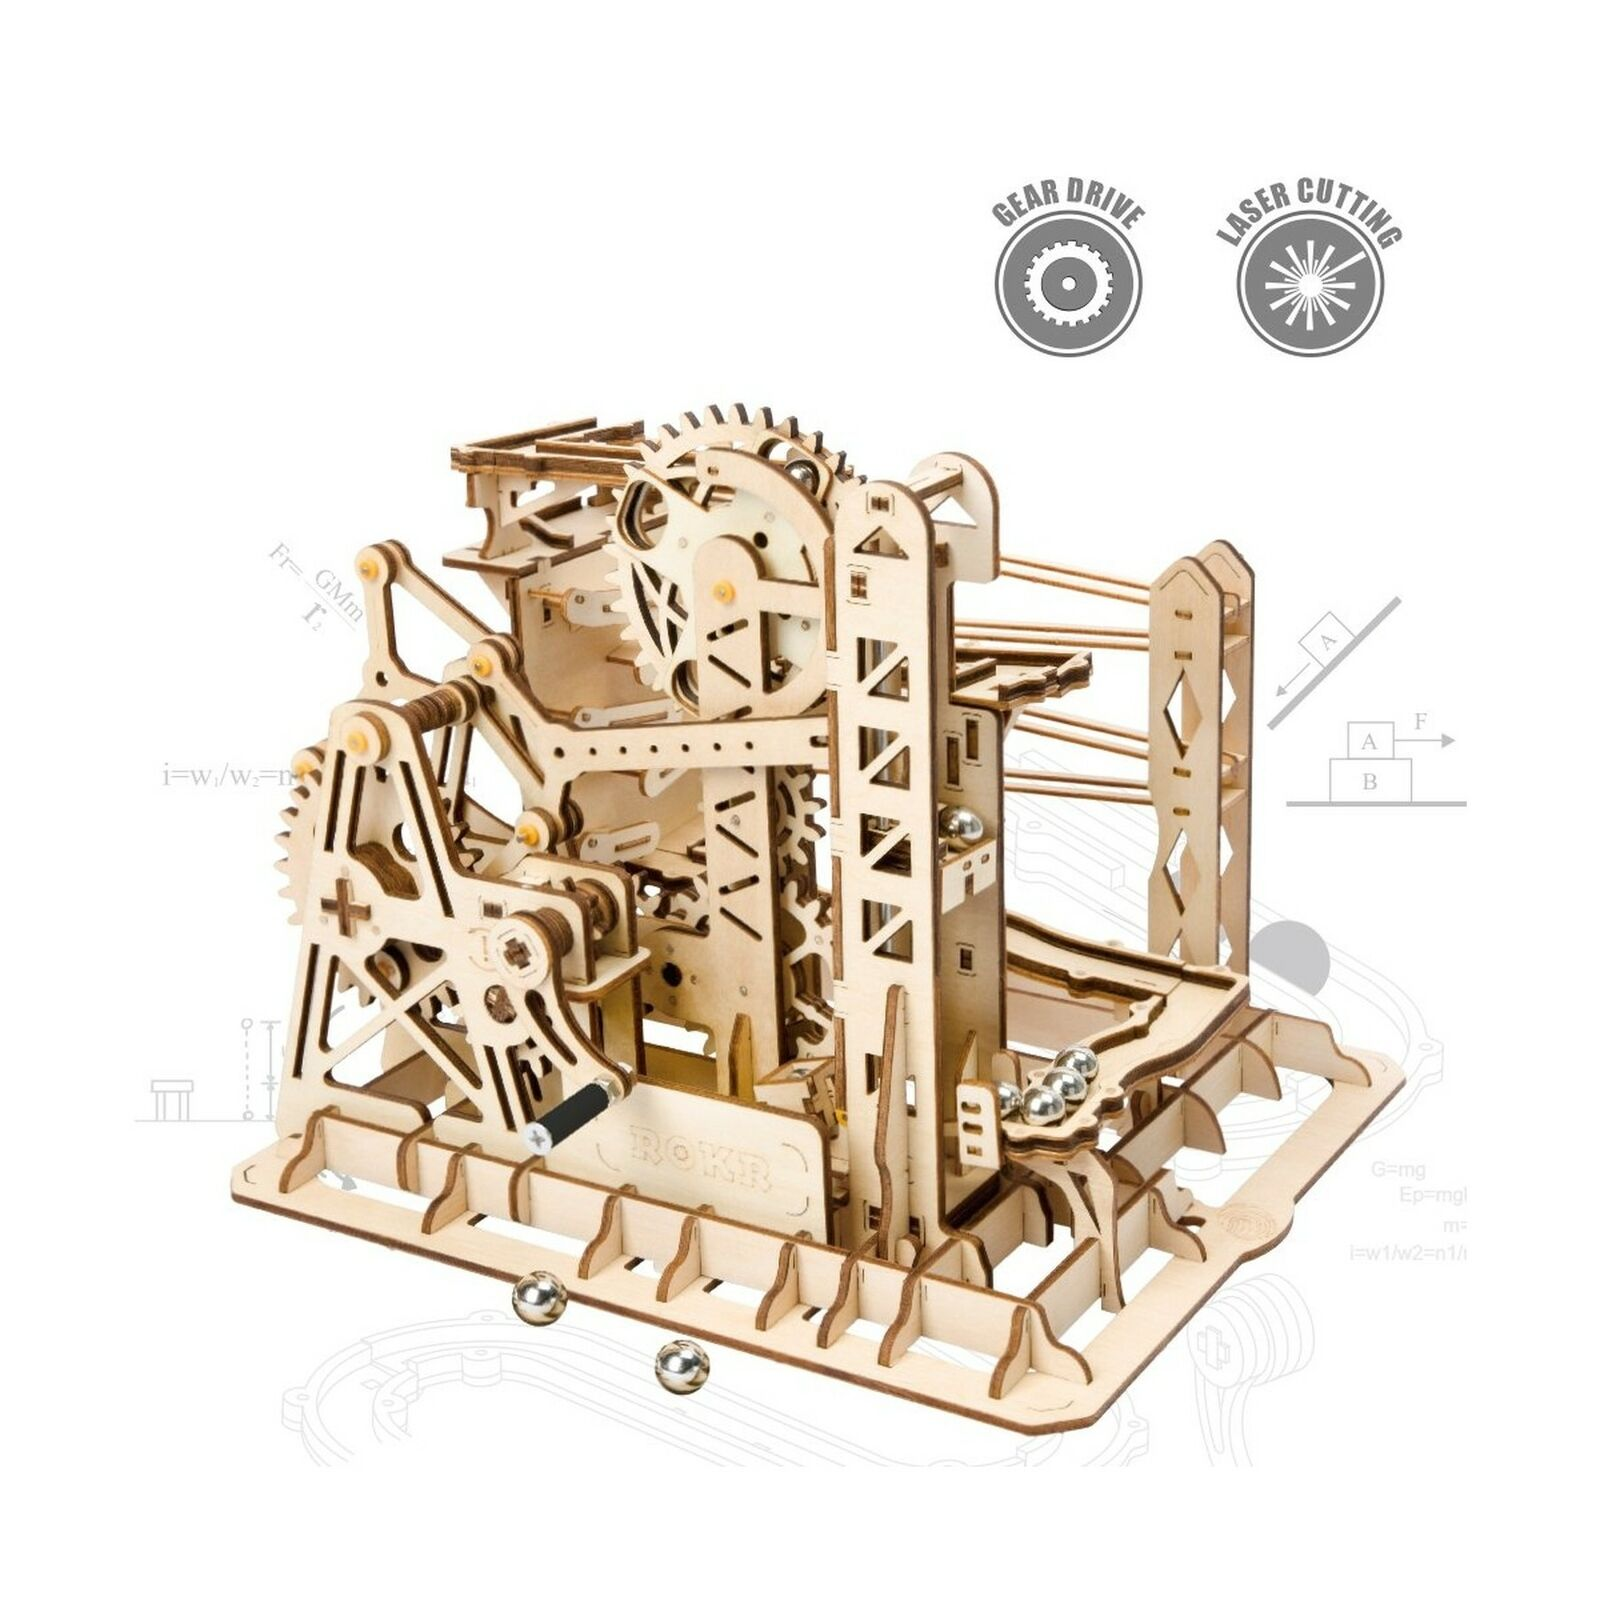 ROKR 3D Assembly Wooden Puzzle Brain Teaser Game Mechanical